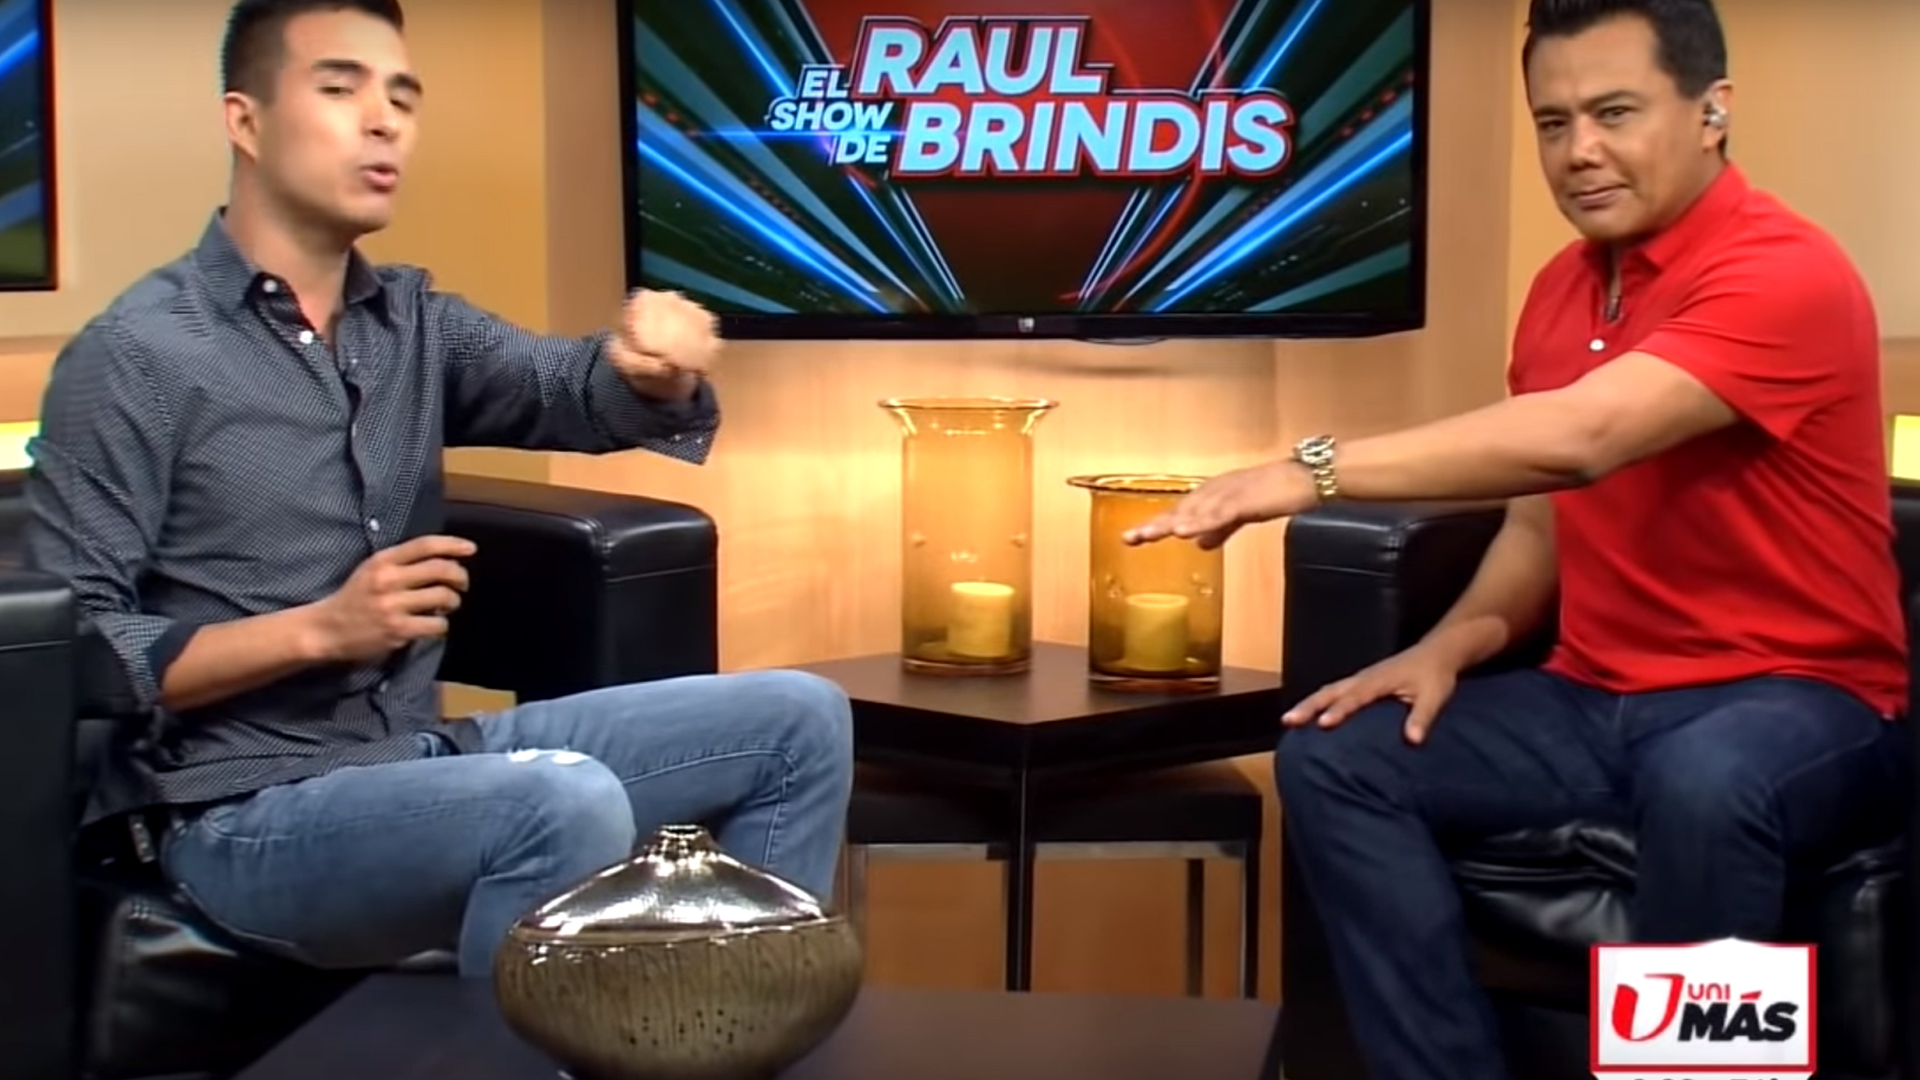 Video: Fernando Velasco with Raul Brindis